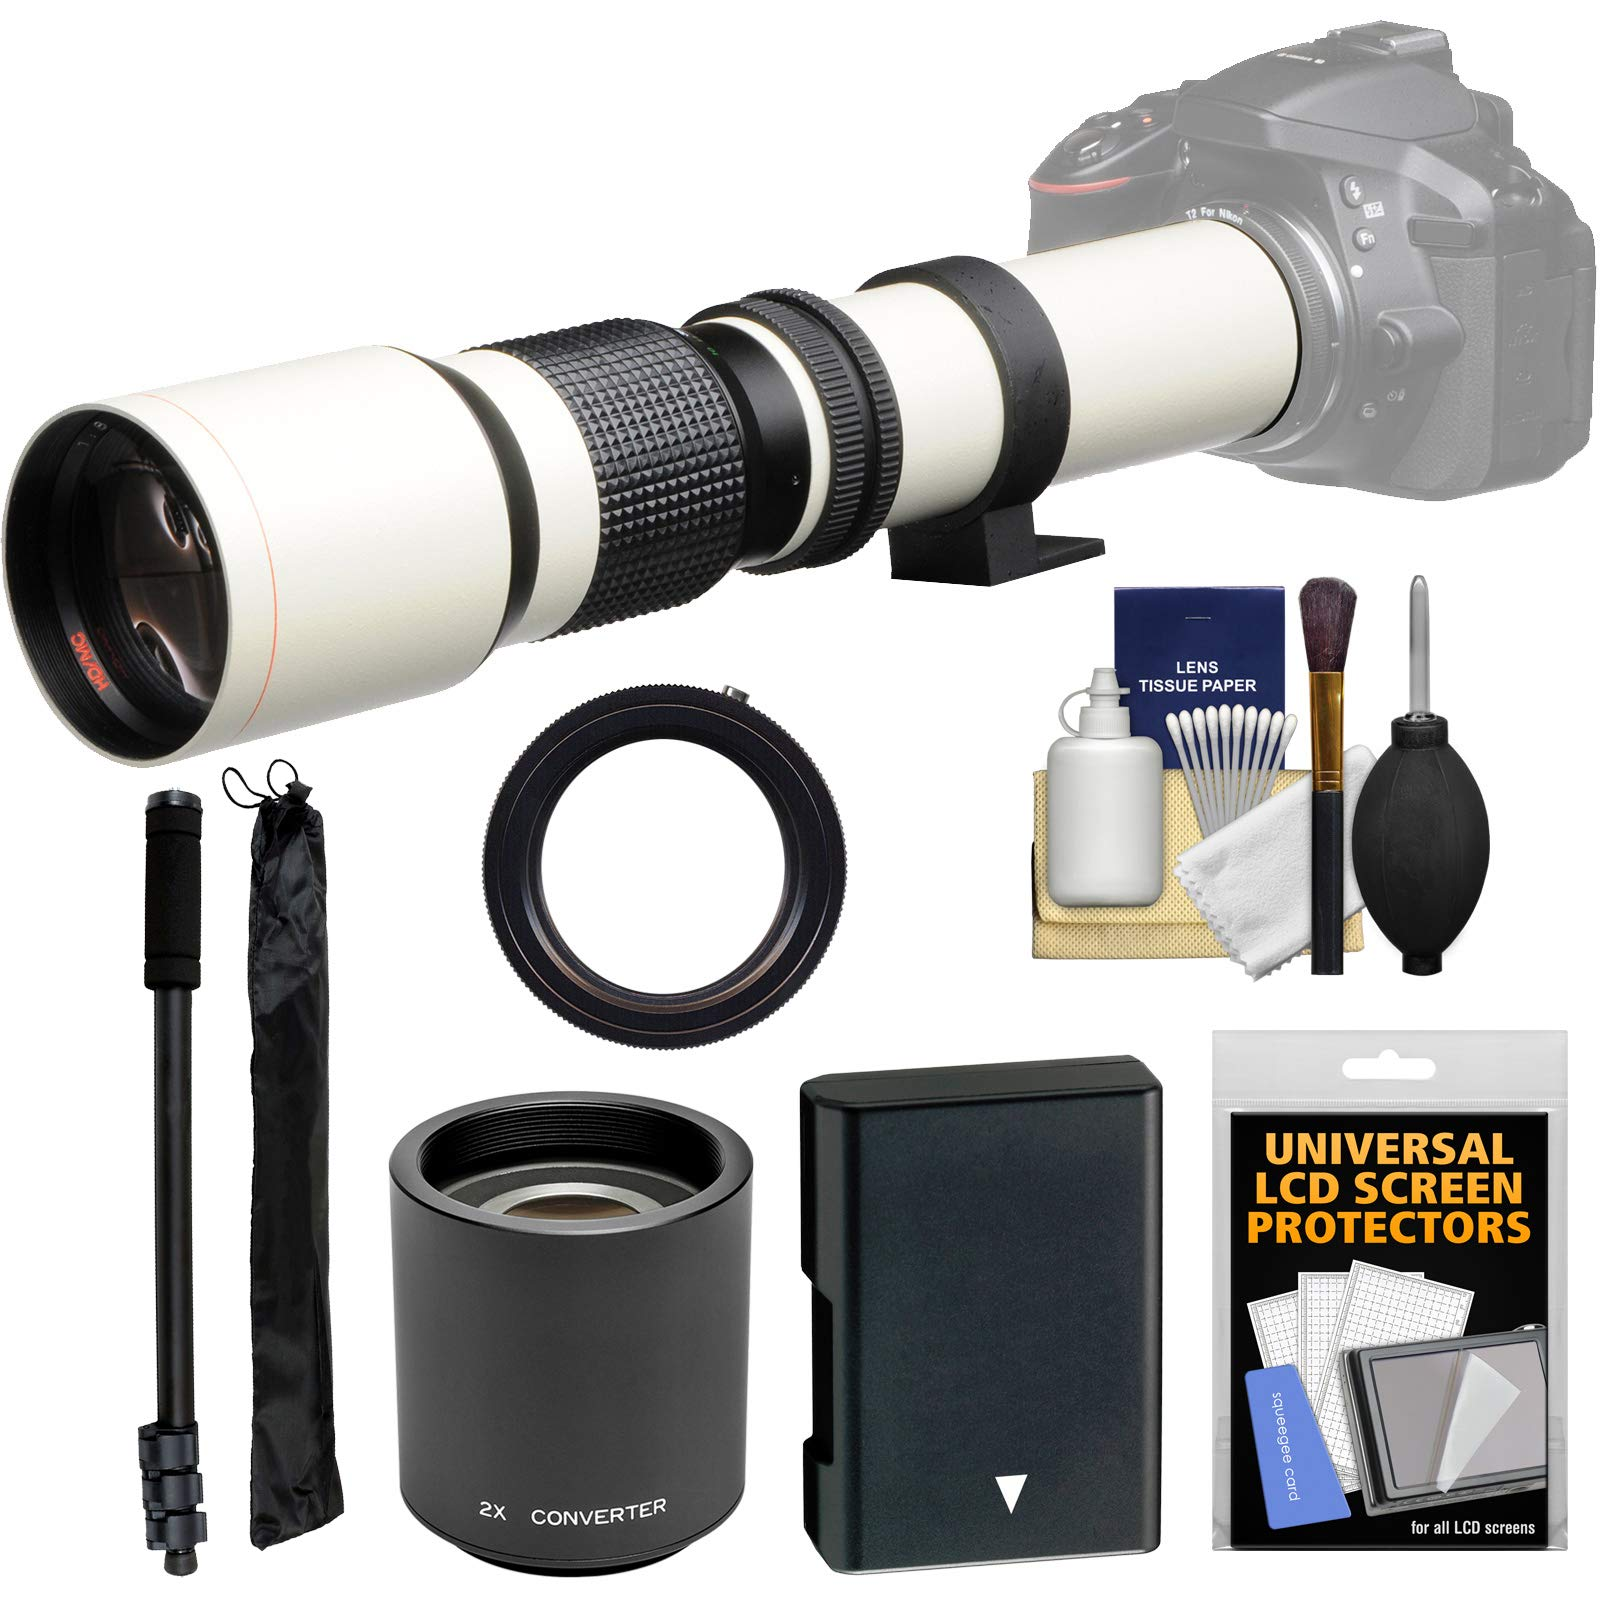 Vivitar 500mm f/8.0 Telephoto Lens (T Mount) (White) with 2X Teleconverter (=1000mm) + EN-EL14 Battery + Monopod + Kit for D3300, D3400, D5300, D5500, D5600 by Vivitar (Image #1)